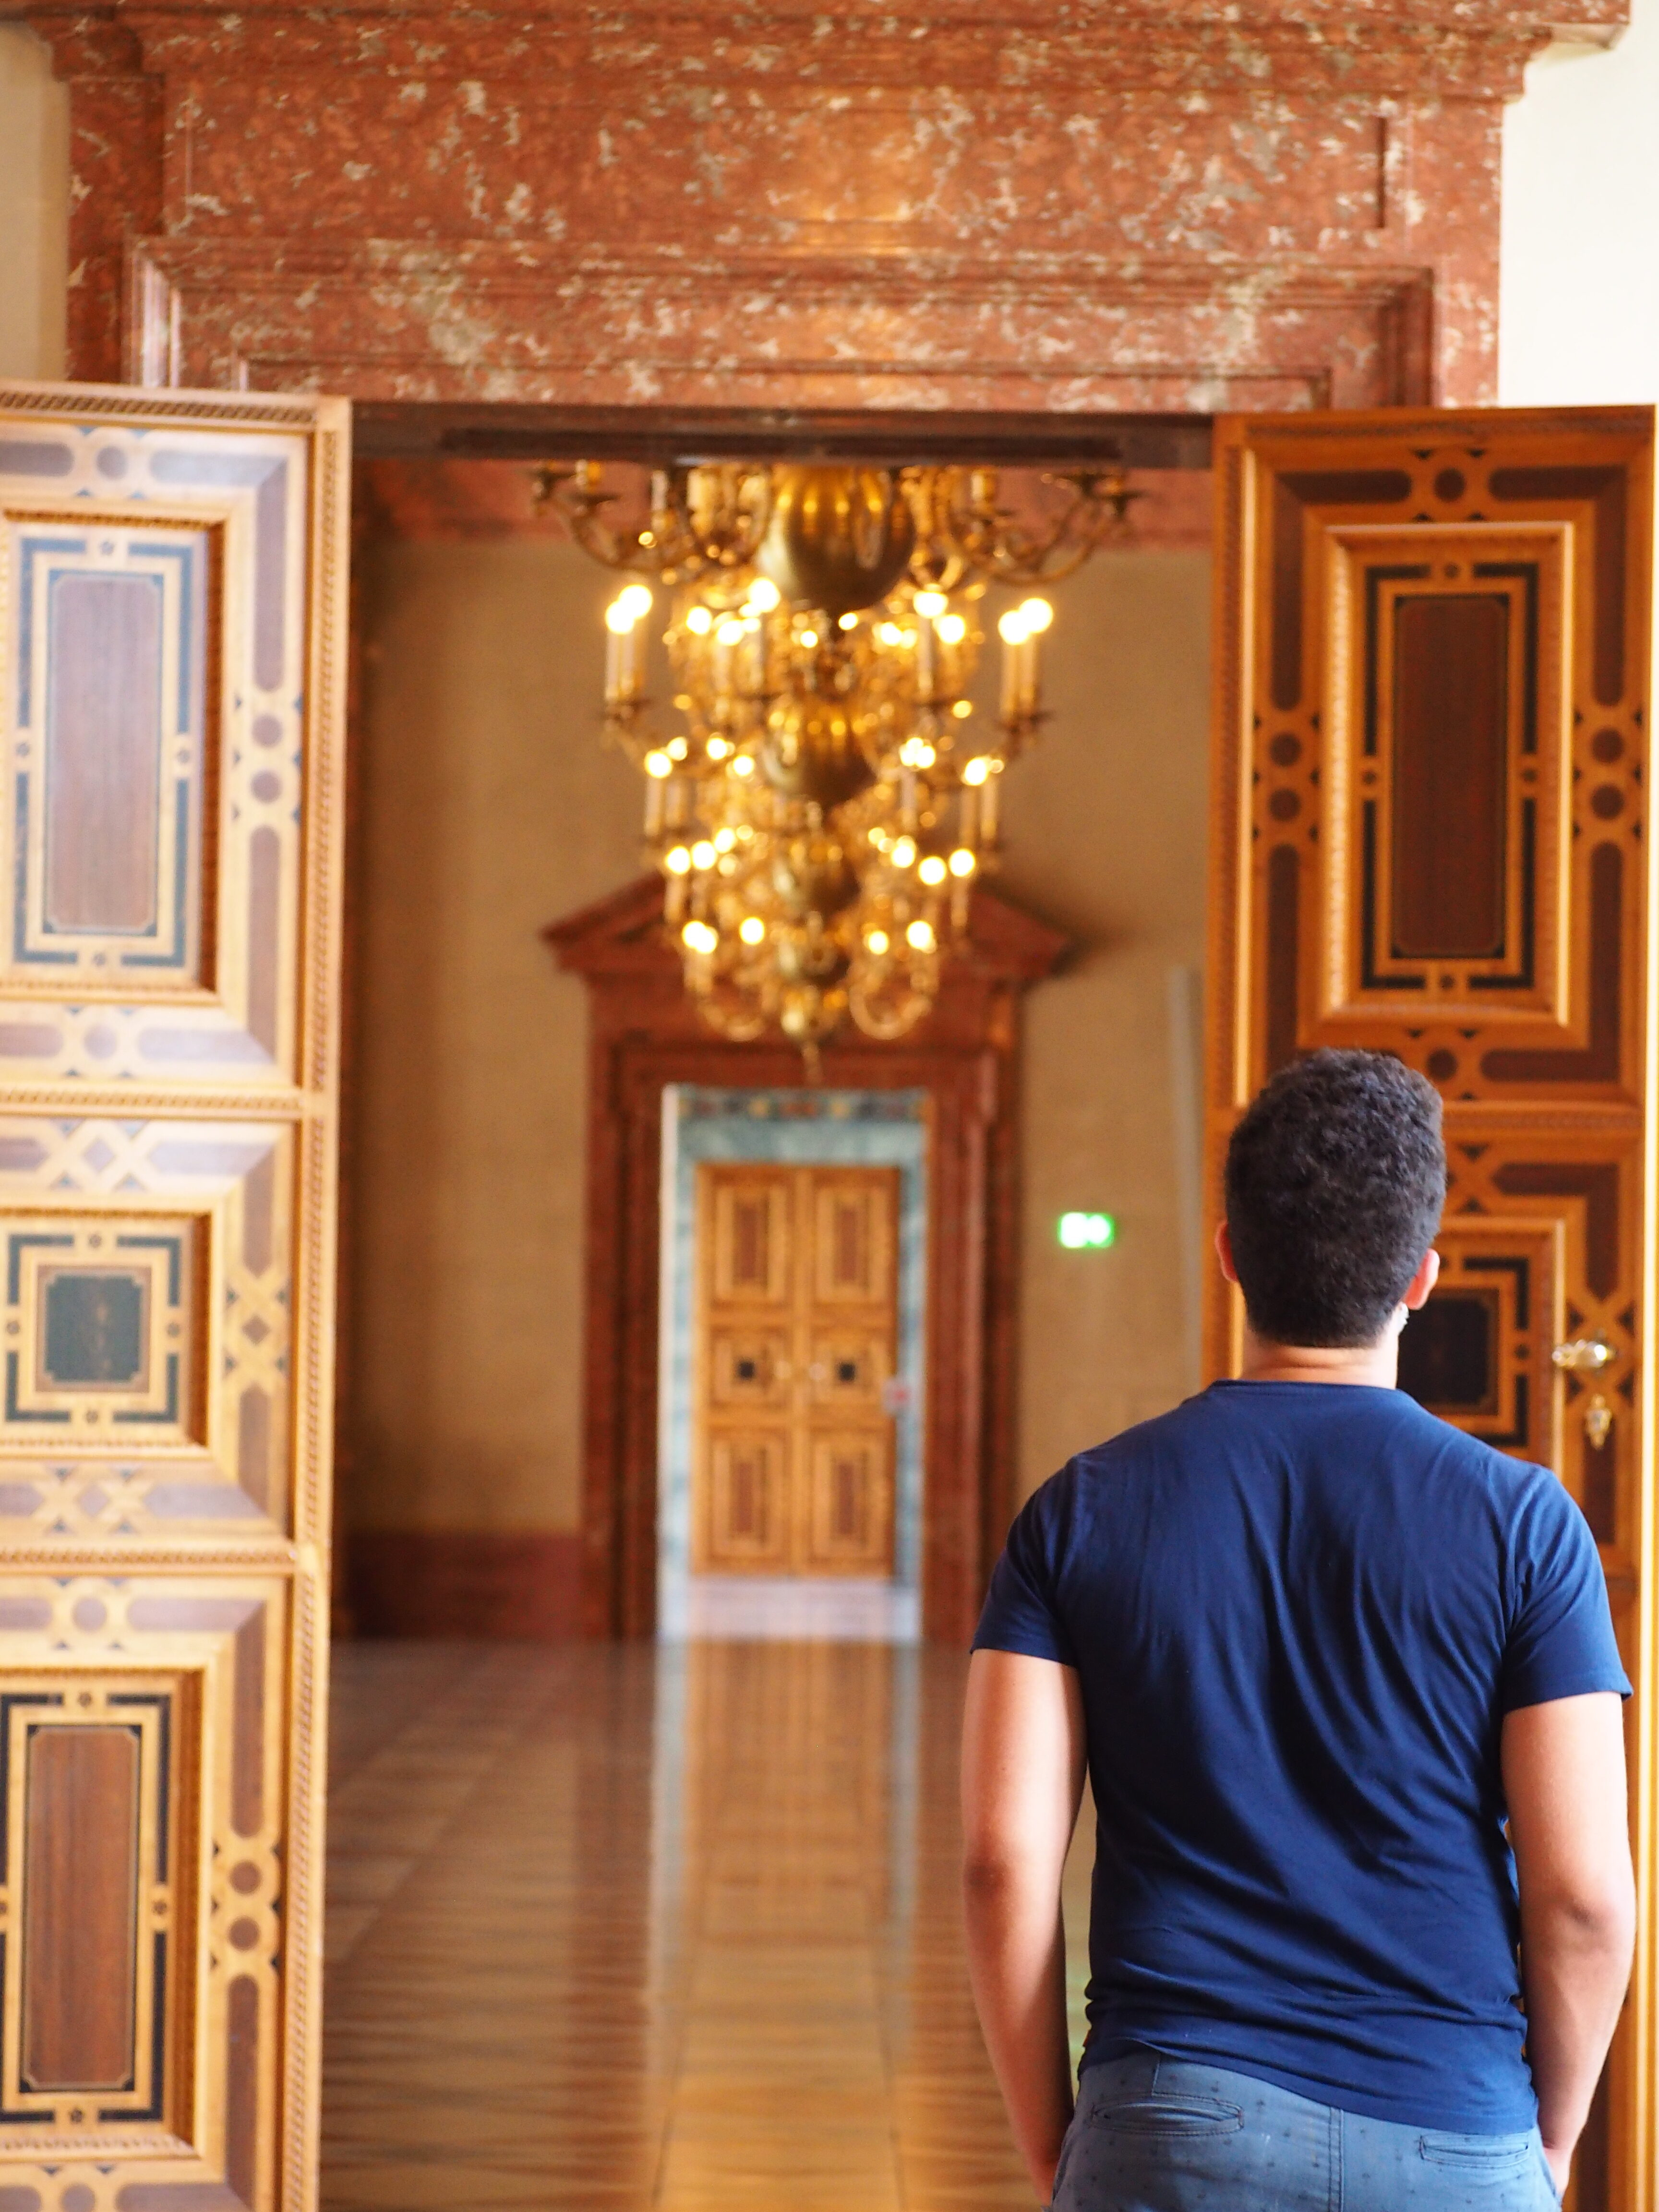 residenz-Munich-musees-interieur-rotated